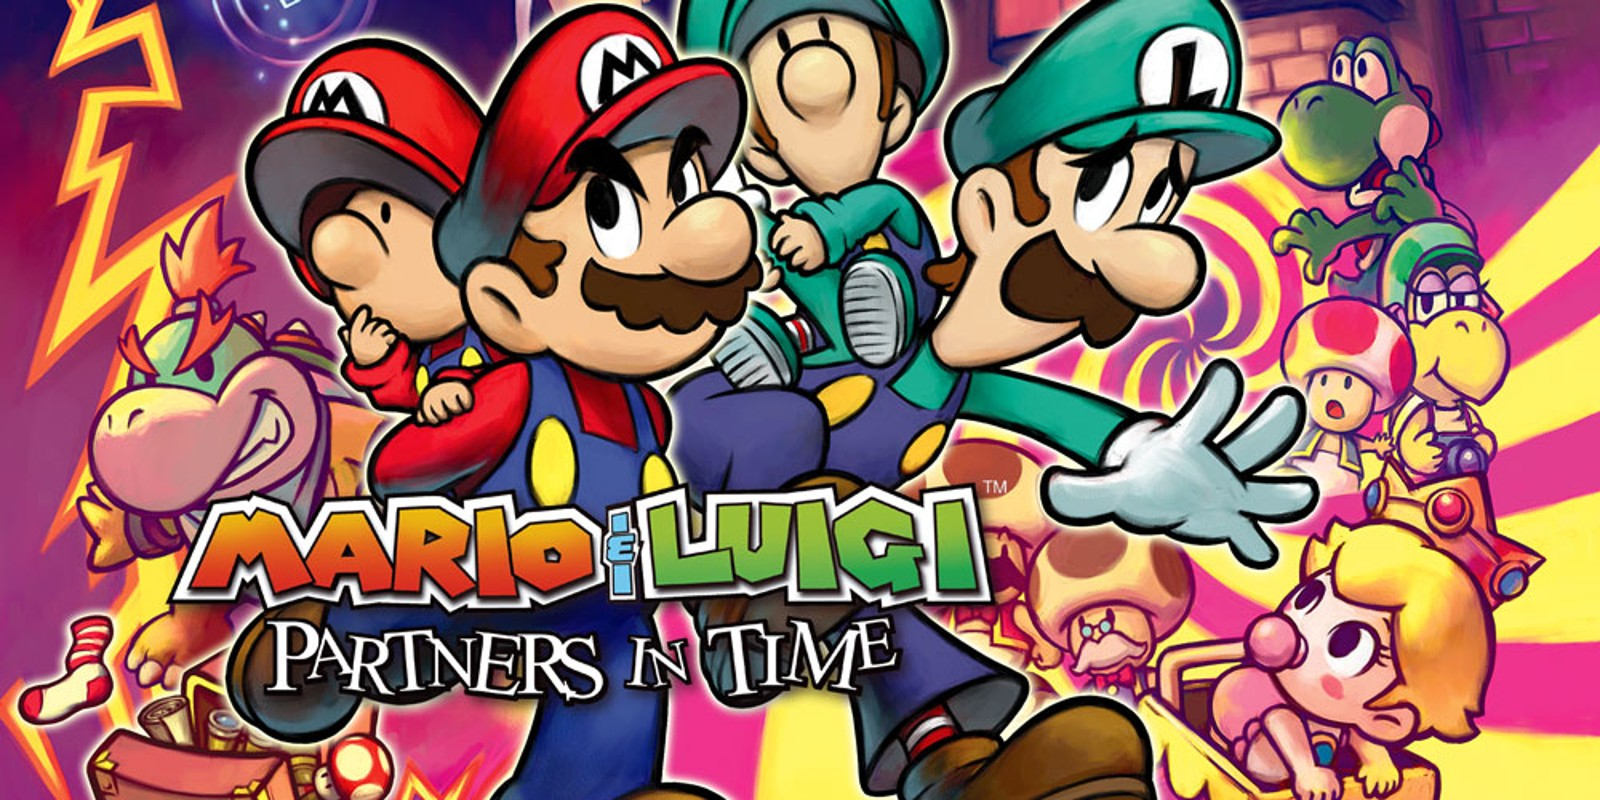 Mario & Luigi Partners in Time